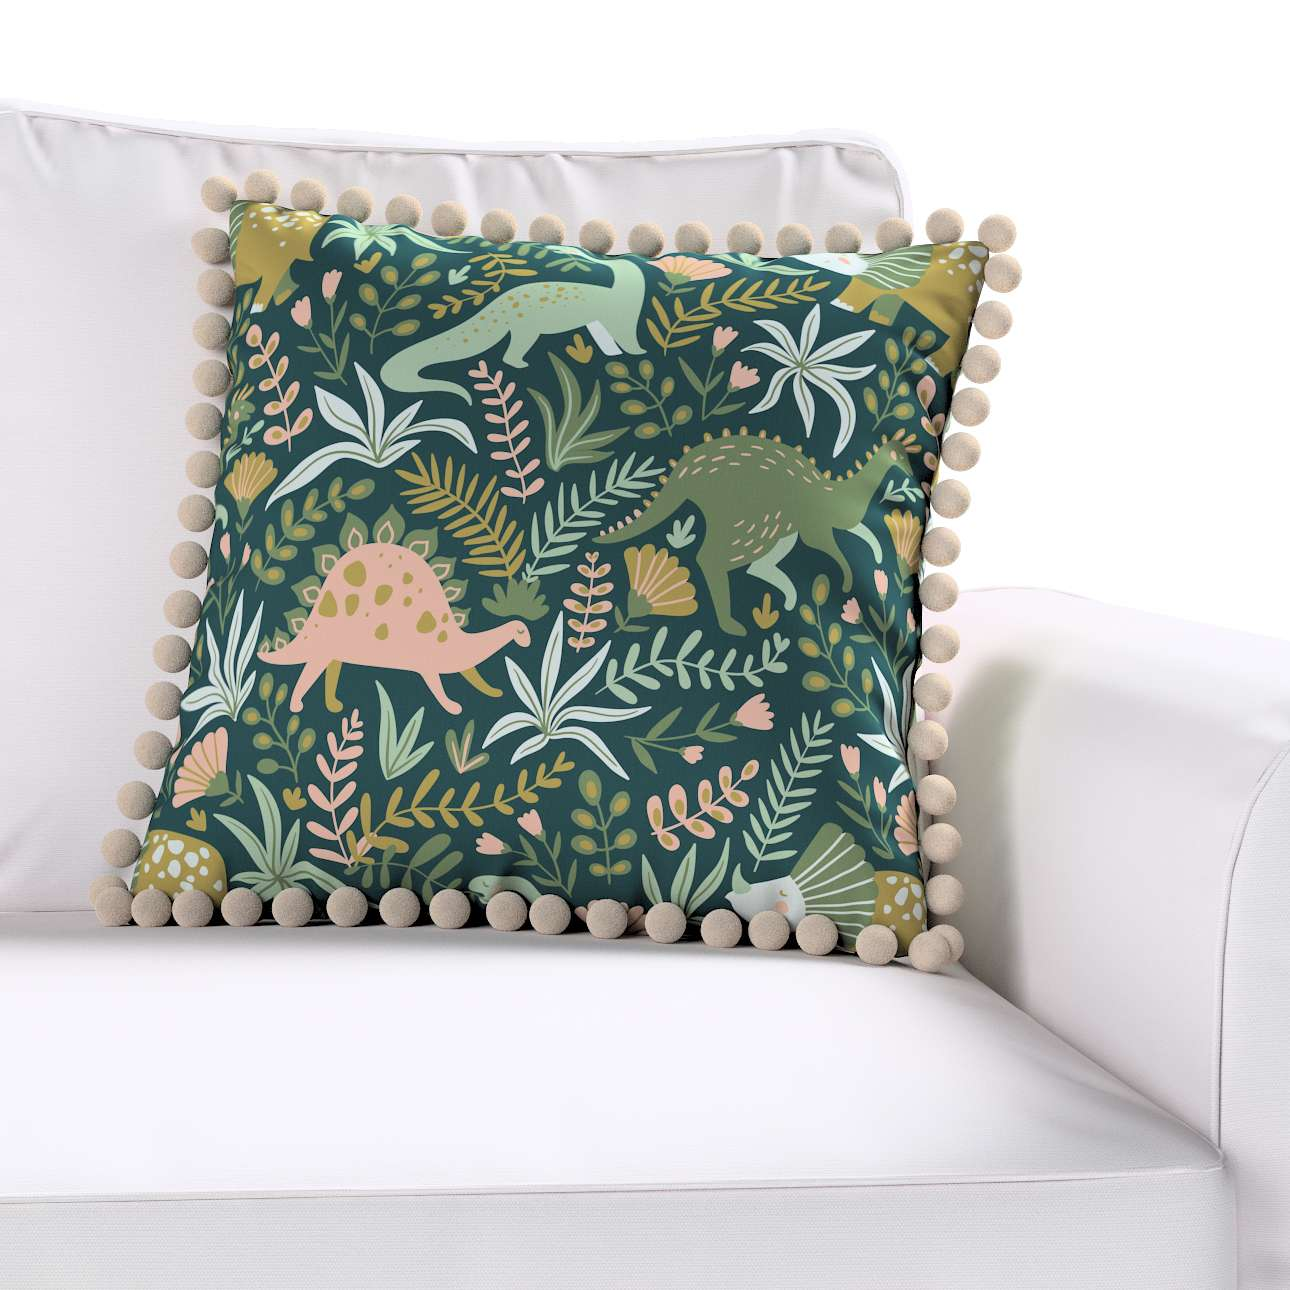 Daisy cushion covers with pom poms in collection Magic Collection, fabric: 500-20